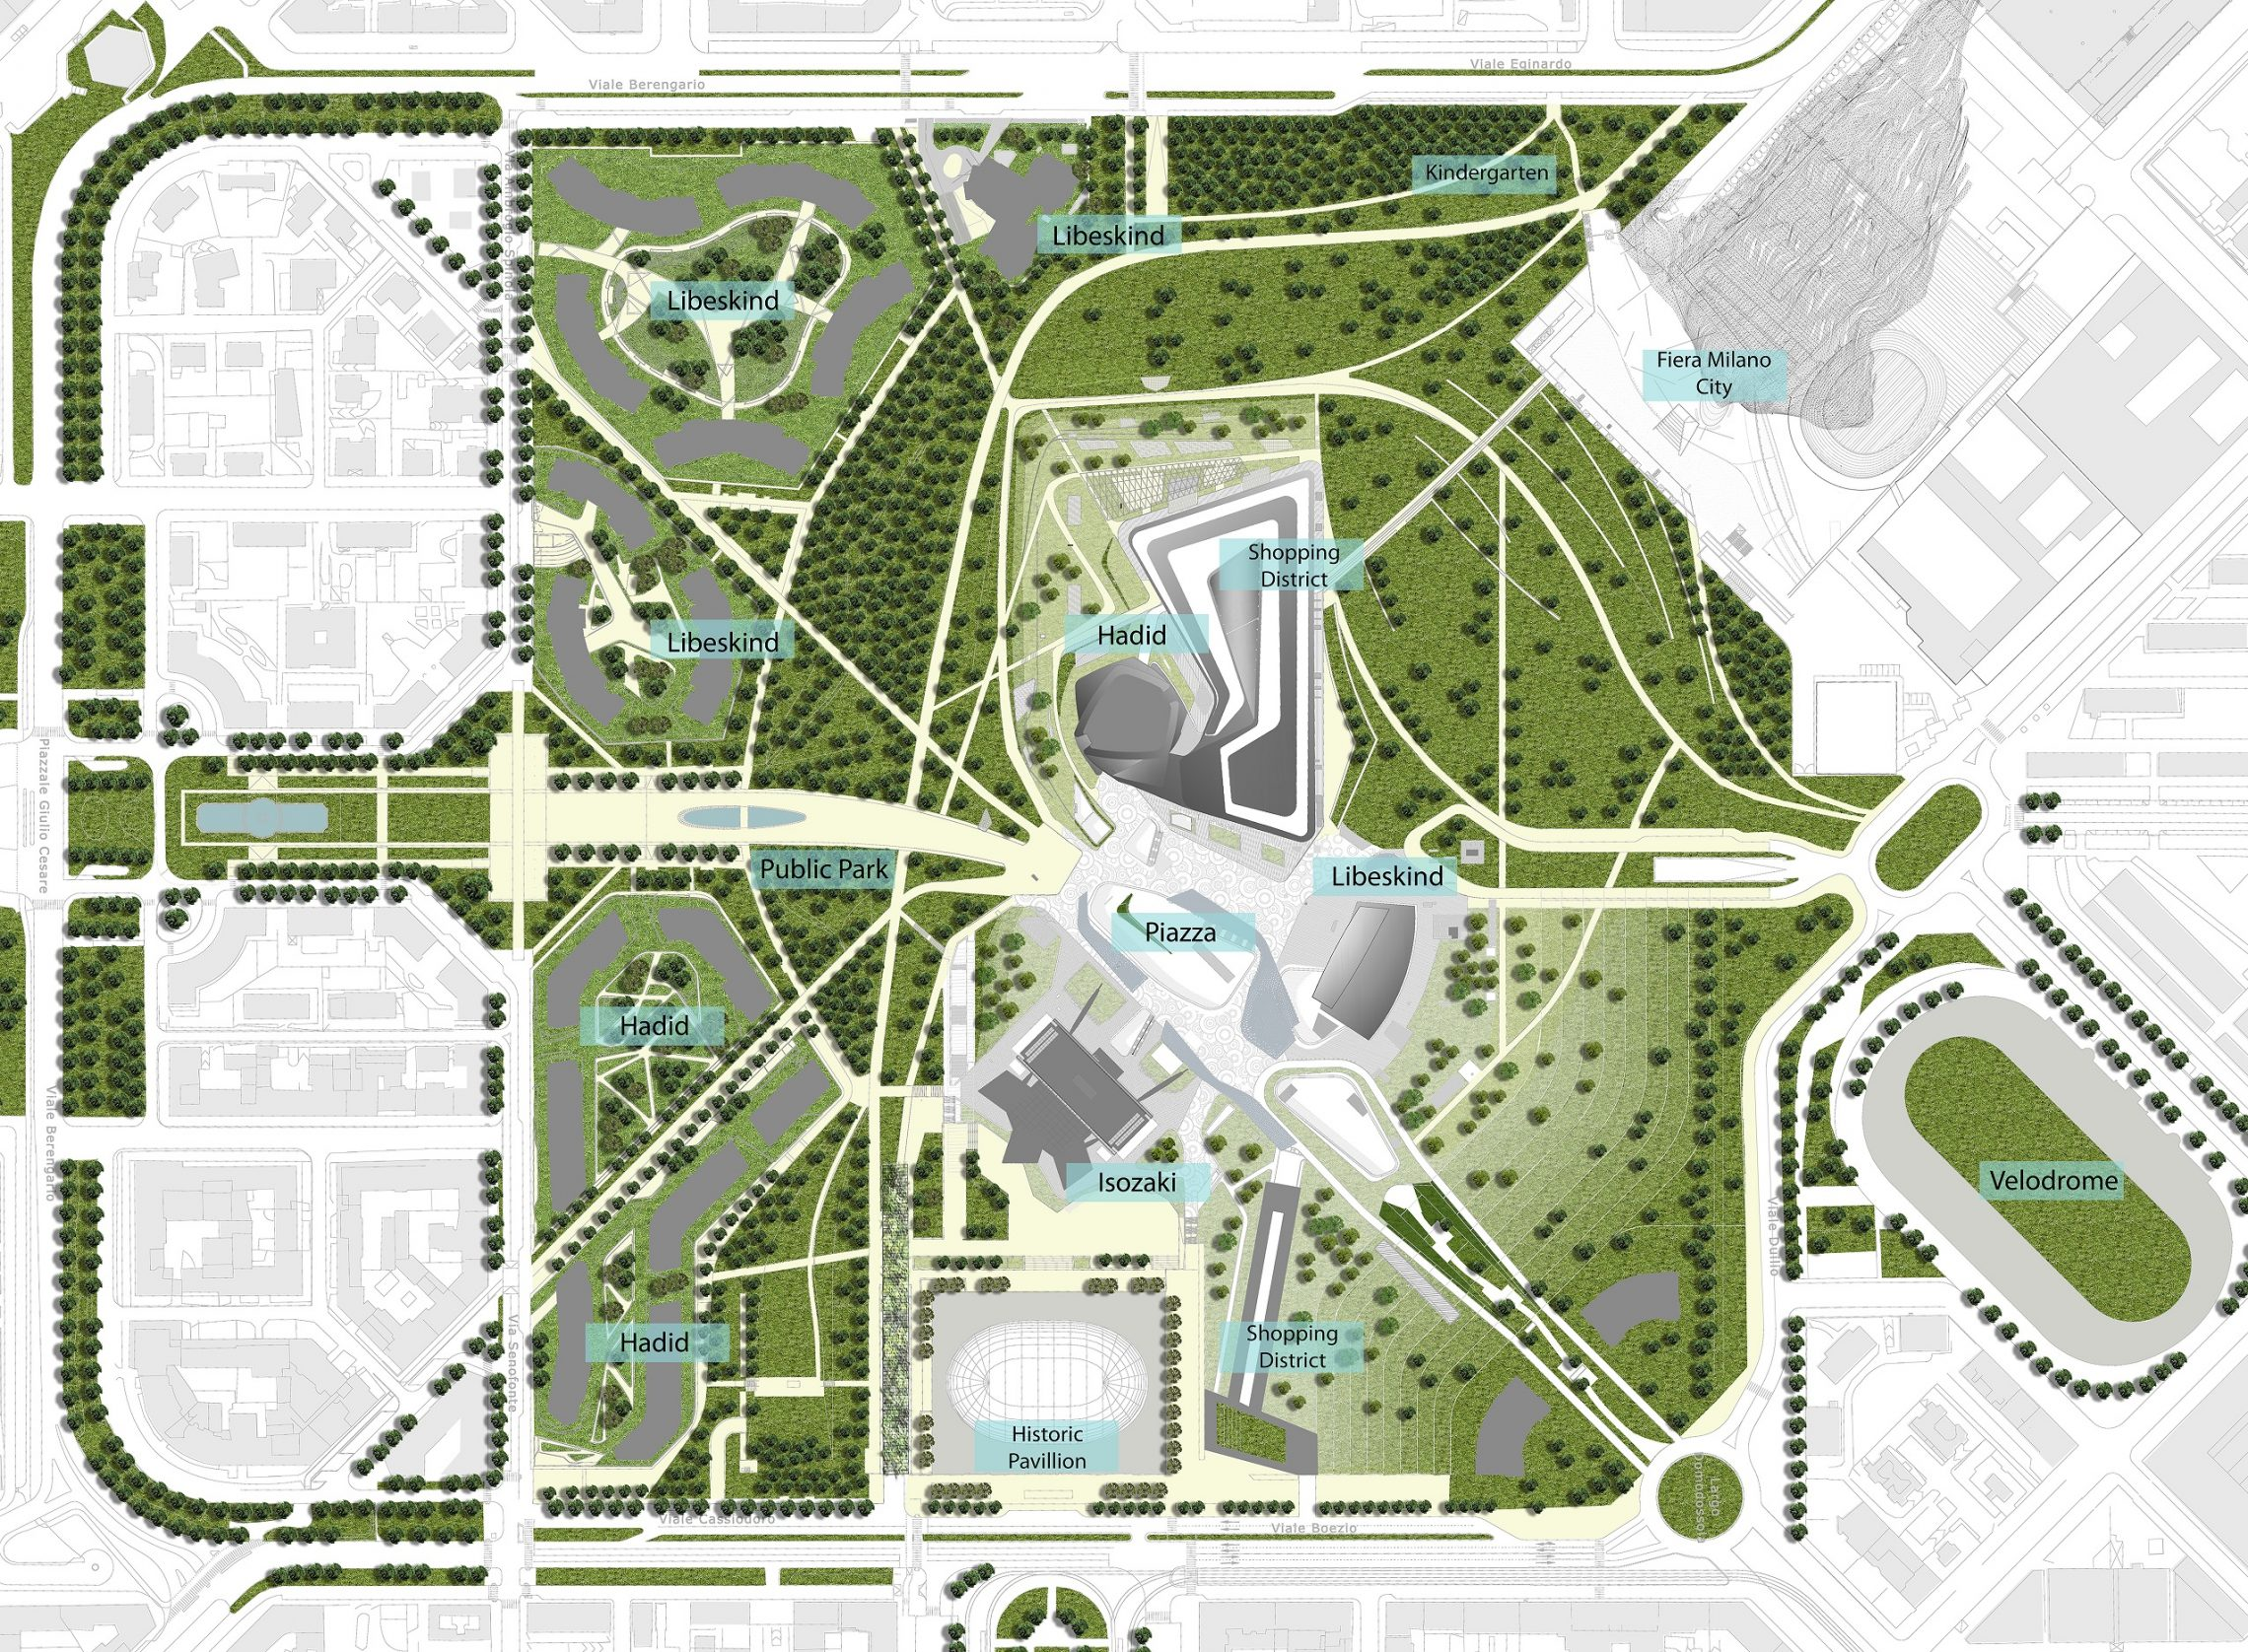 master planner Master planning website masterplanningcom is one of the few specialists in the north america, facilitating design charettes for private companies.